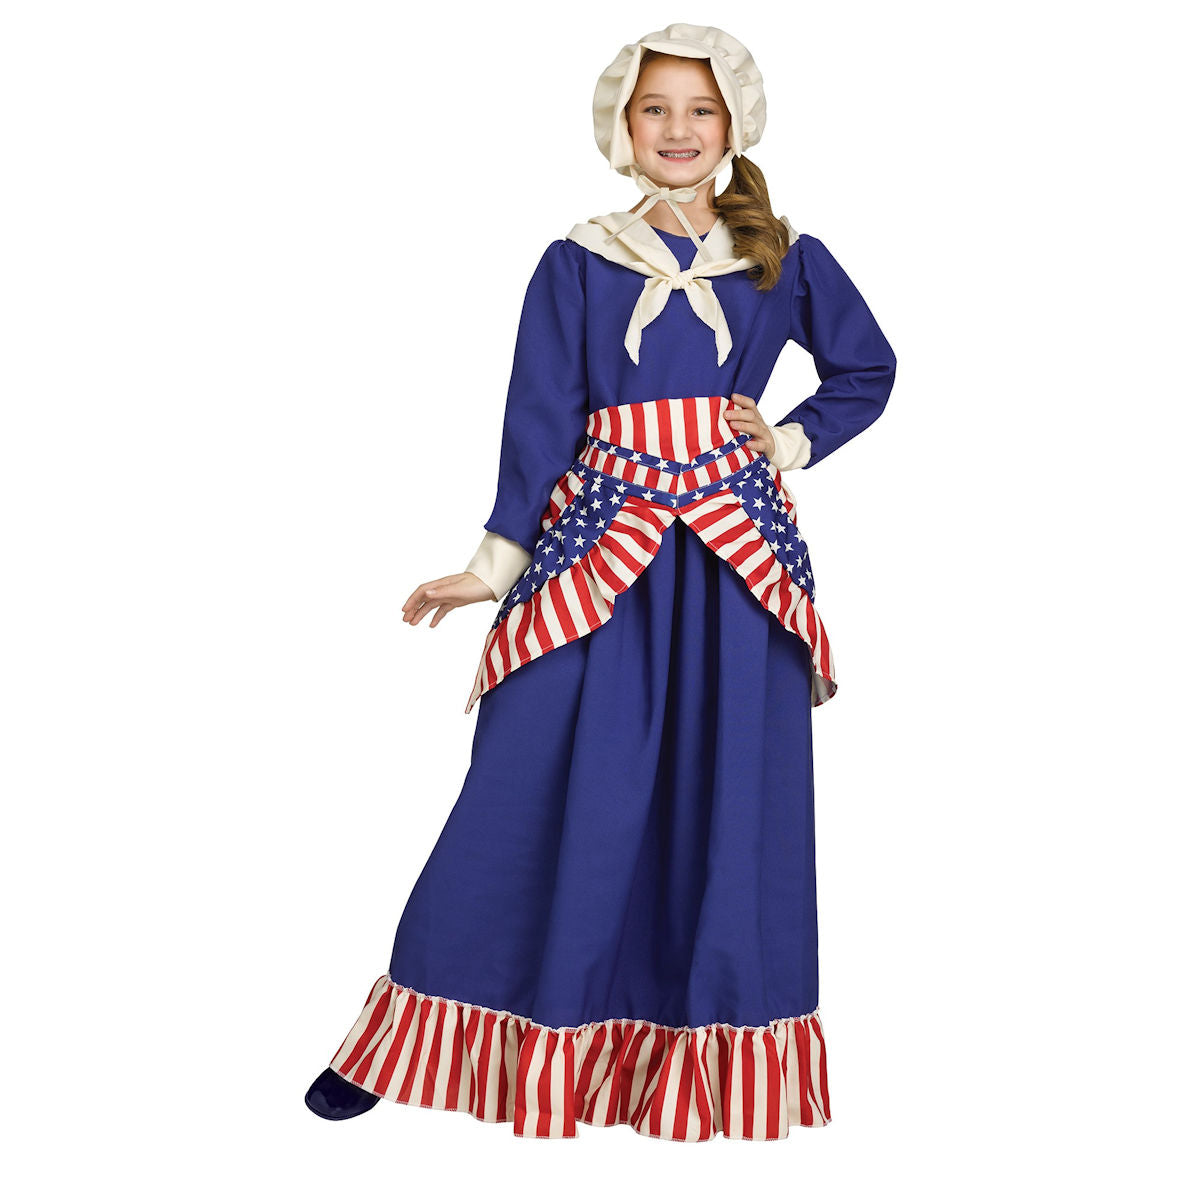 Betsy Rose Colonial Pioneer Girls Fancy Dress Costume